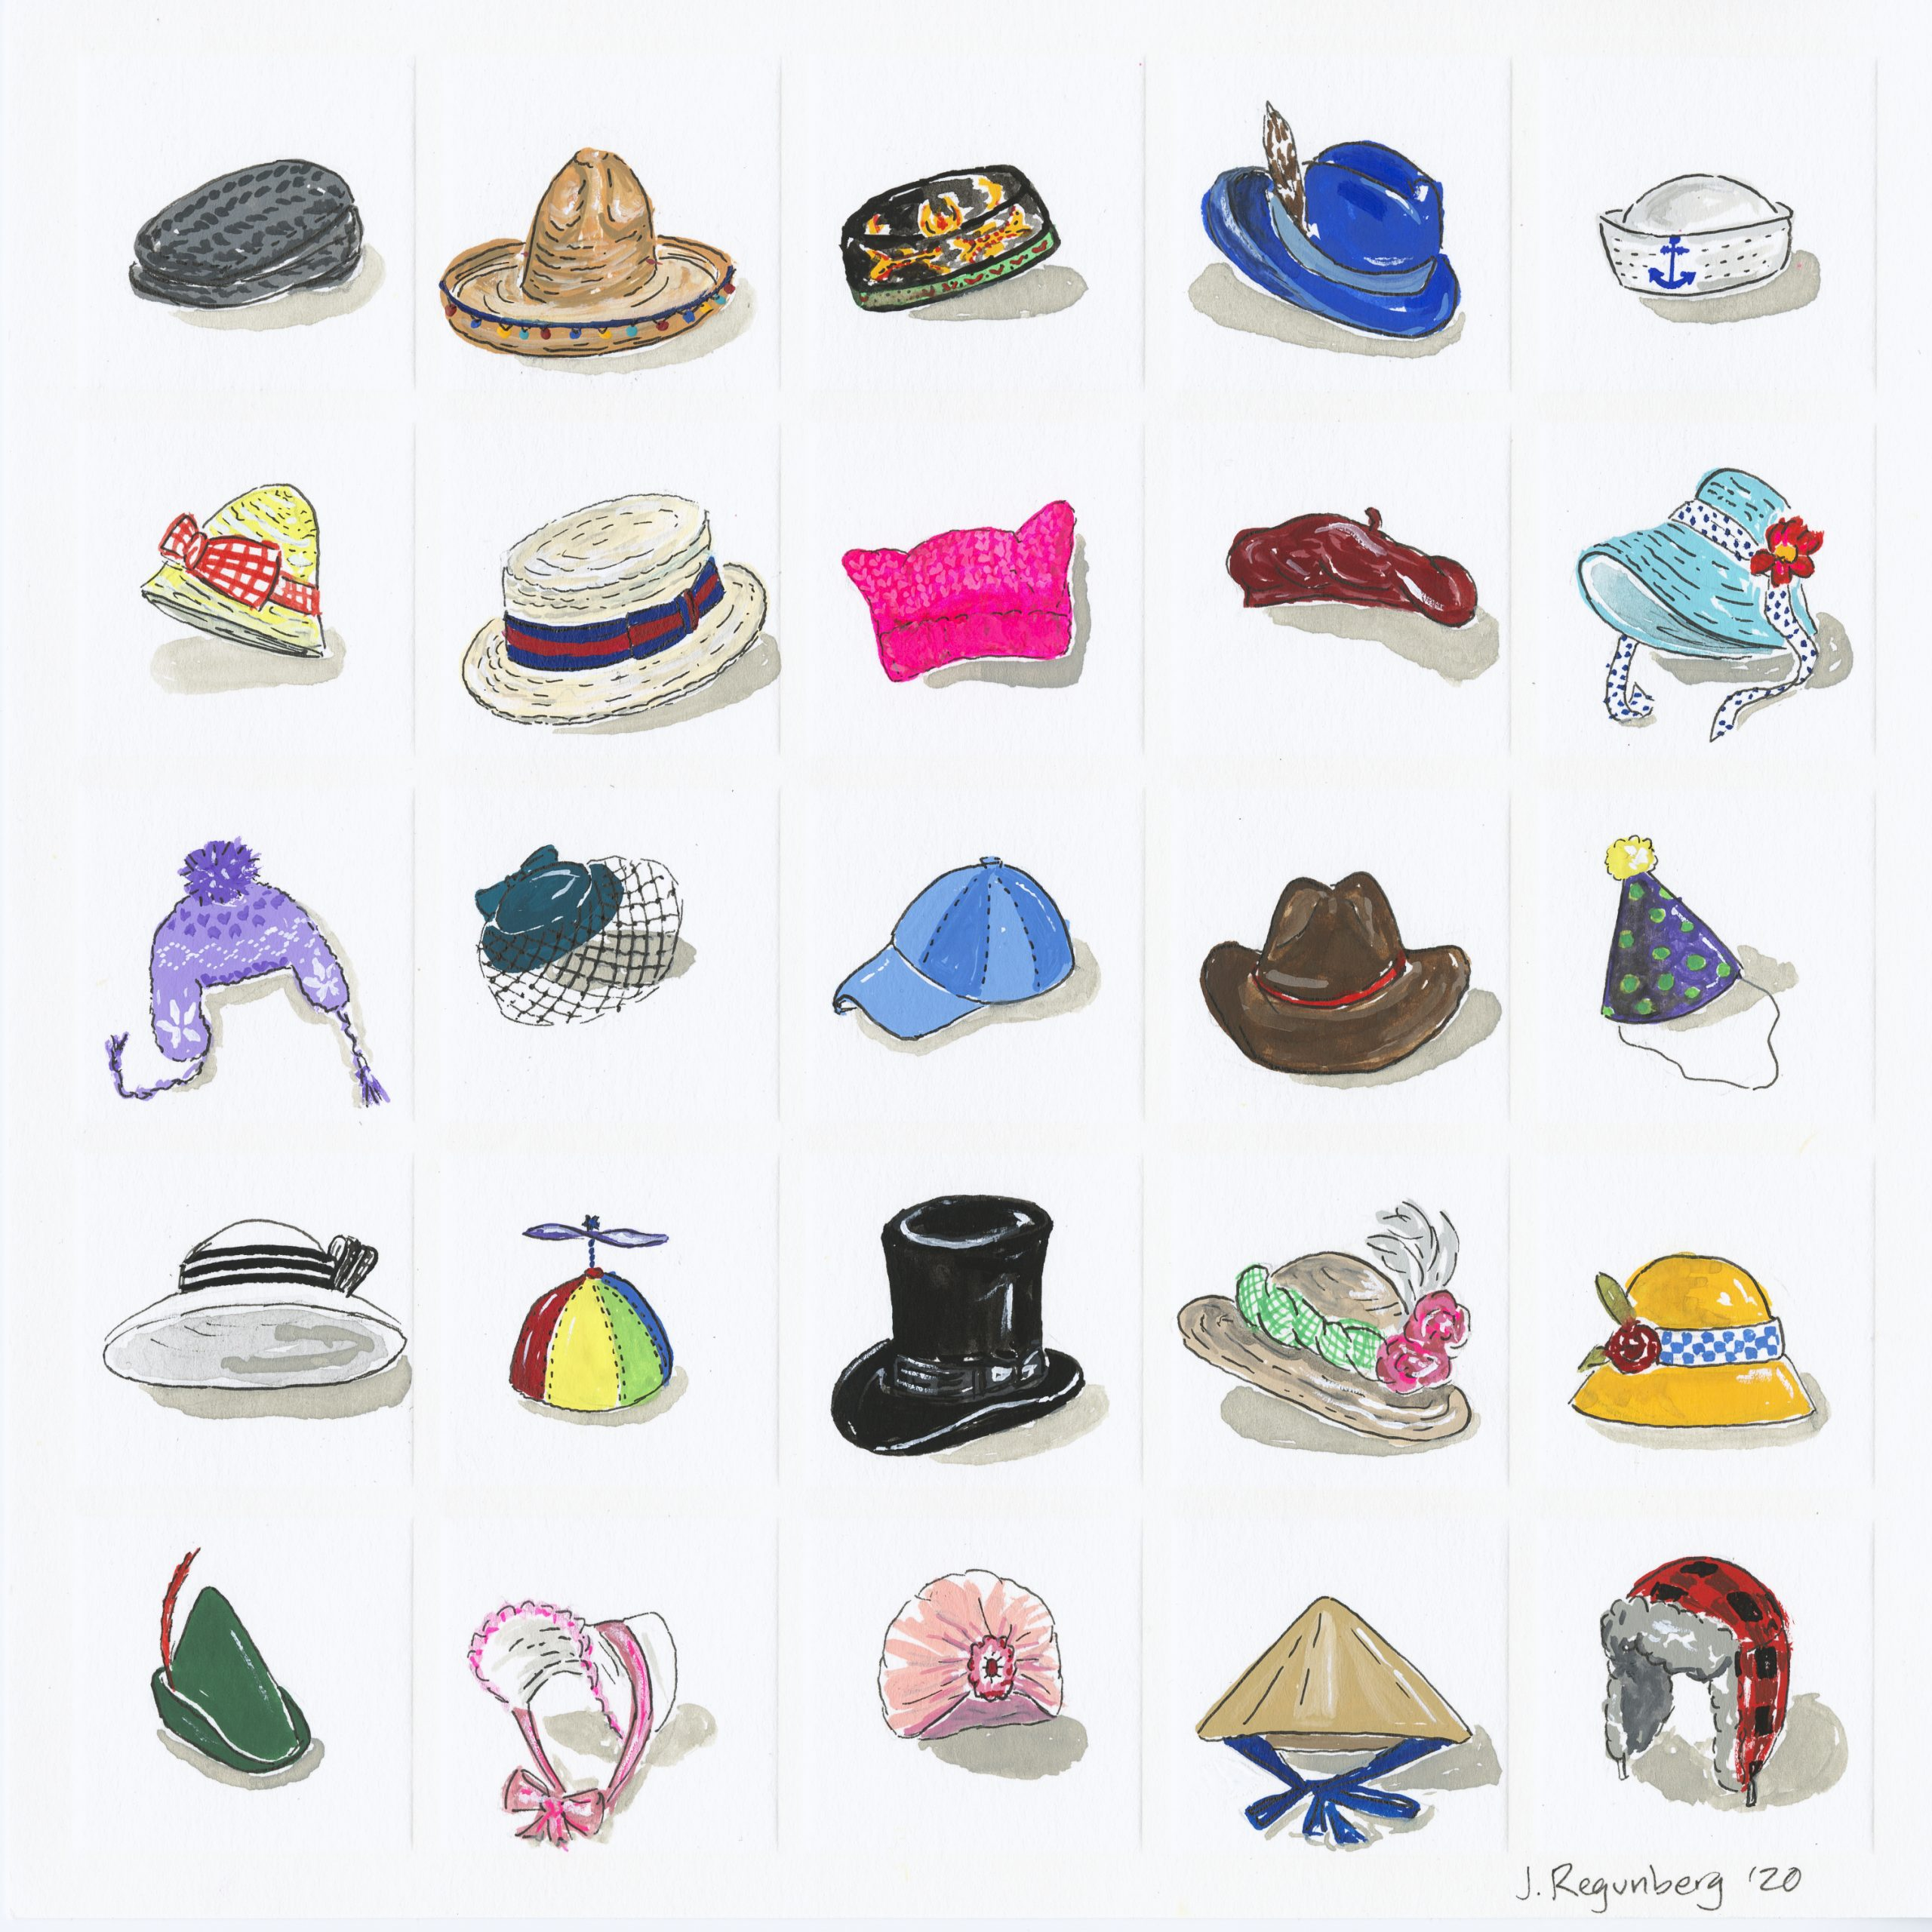 H is for Hats